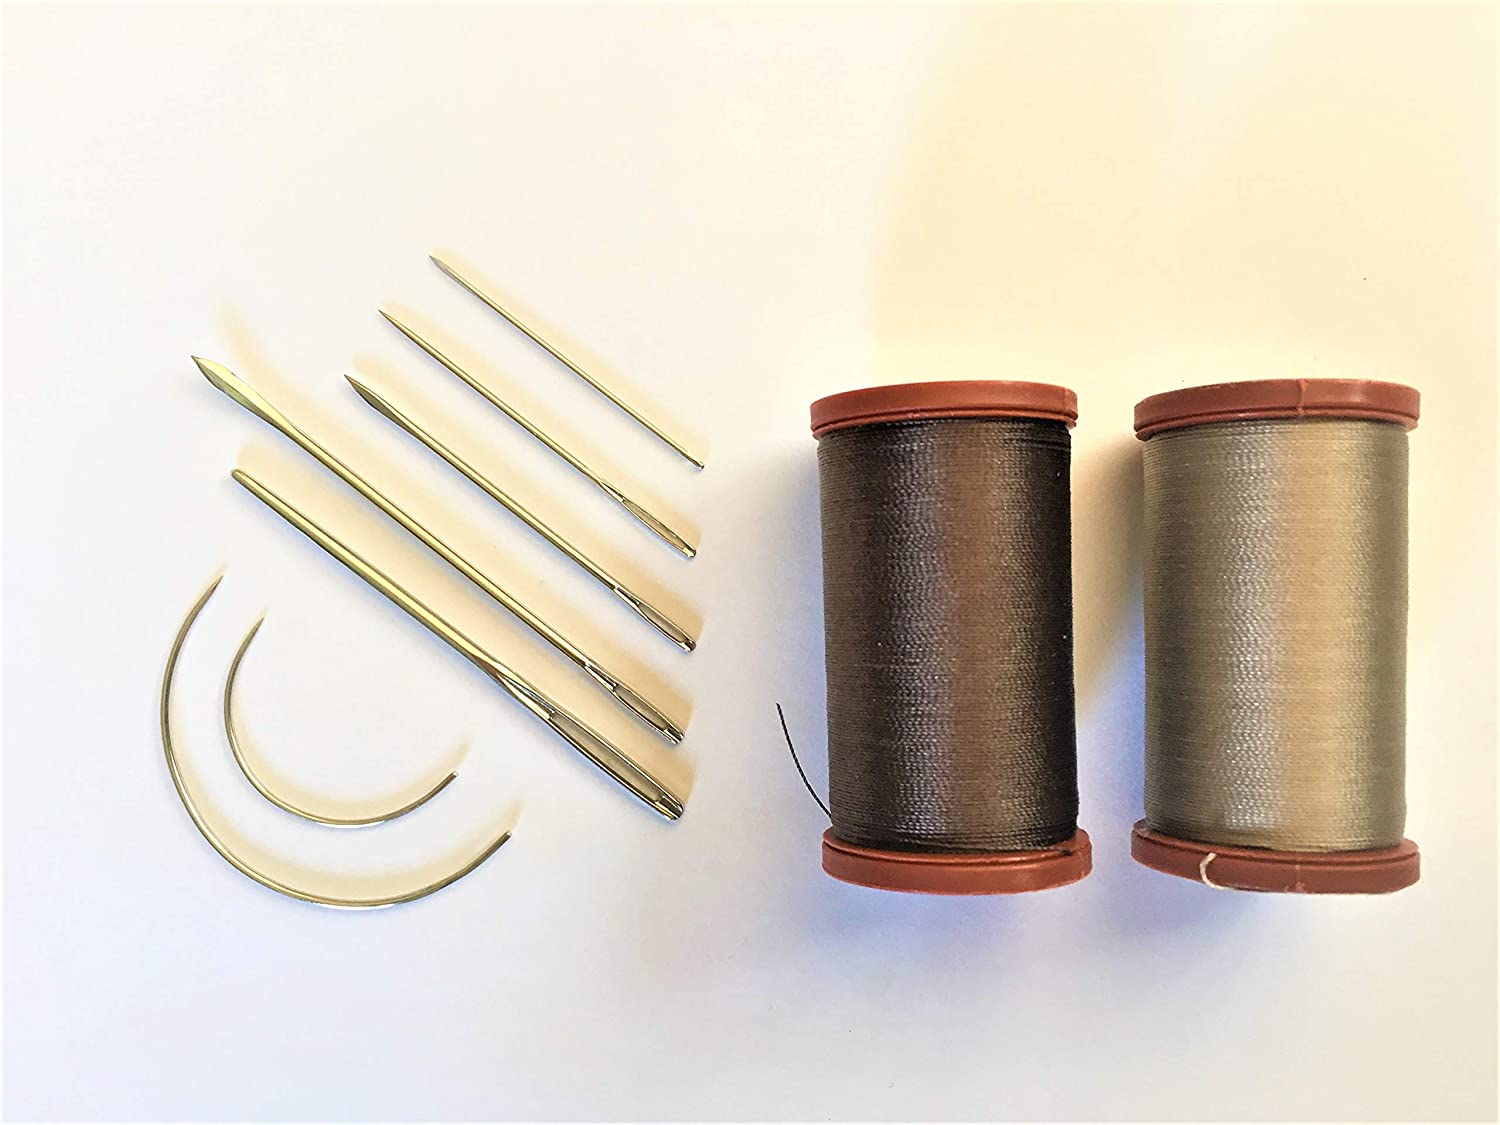 Upholstery Repair Kit Coats Extra Strong Upholstery Thread Plus Heavy Duty Assorted Hand Needles: 7 Needles and 2 spools 150 Yards Each (Brown & Tan)